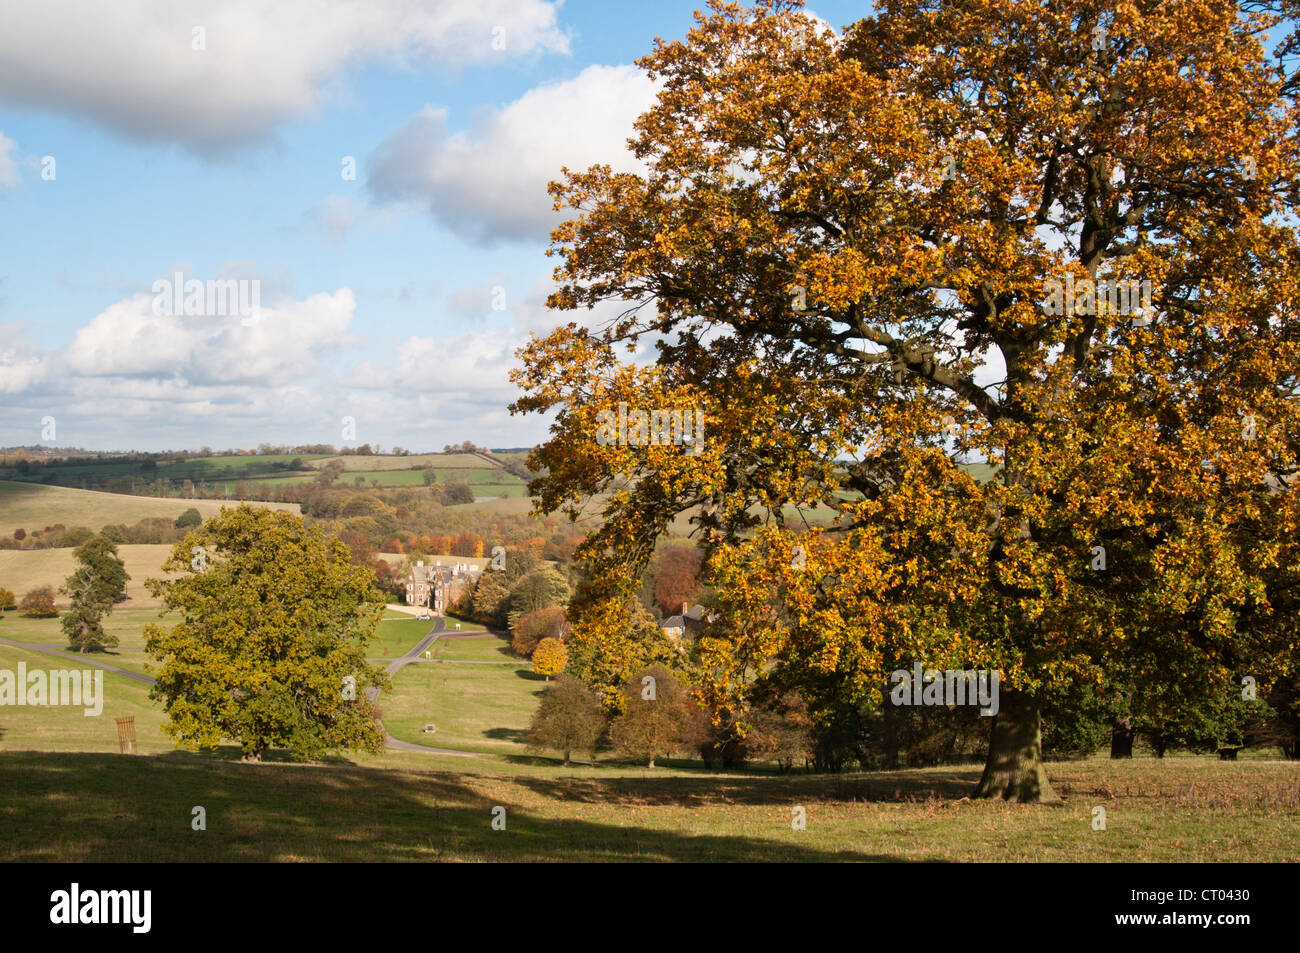 Launds Abbey viewed from amongst the mature parkland trees displaying their Autumn colours in Leicestershire, England - Stock Image